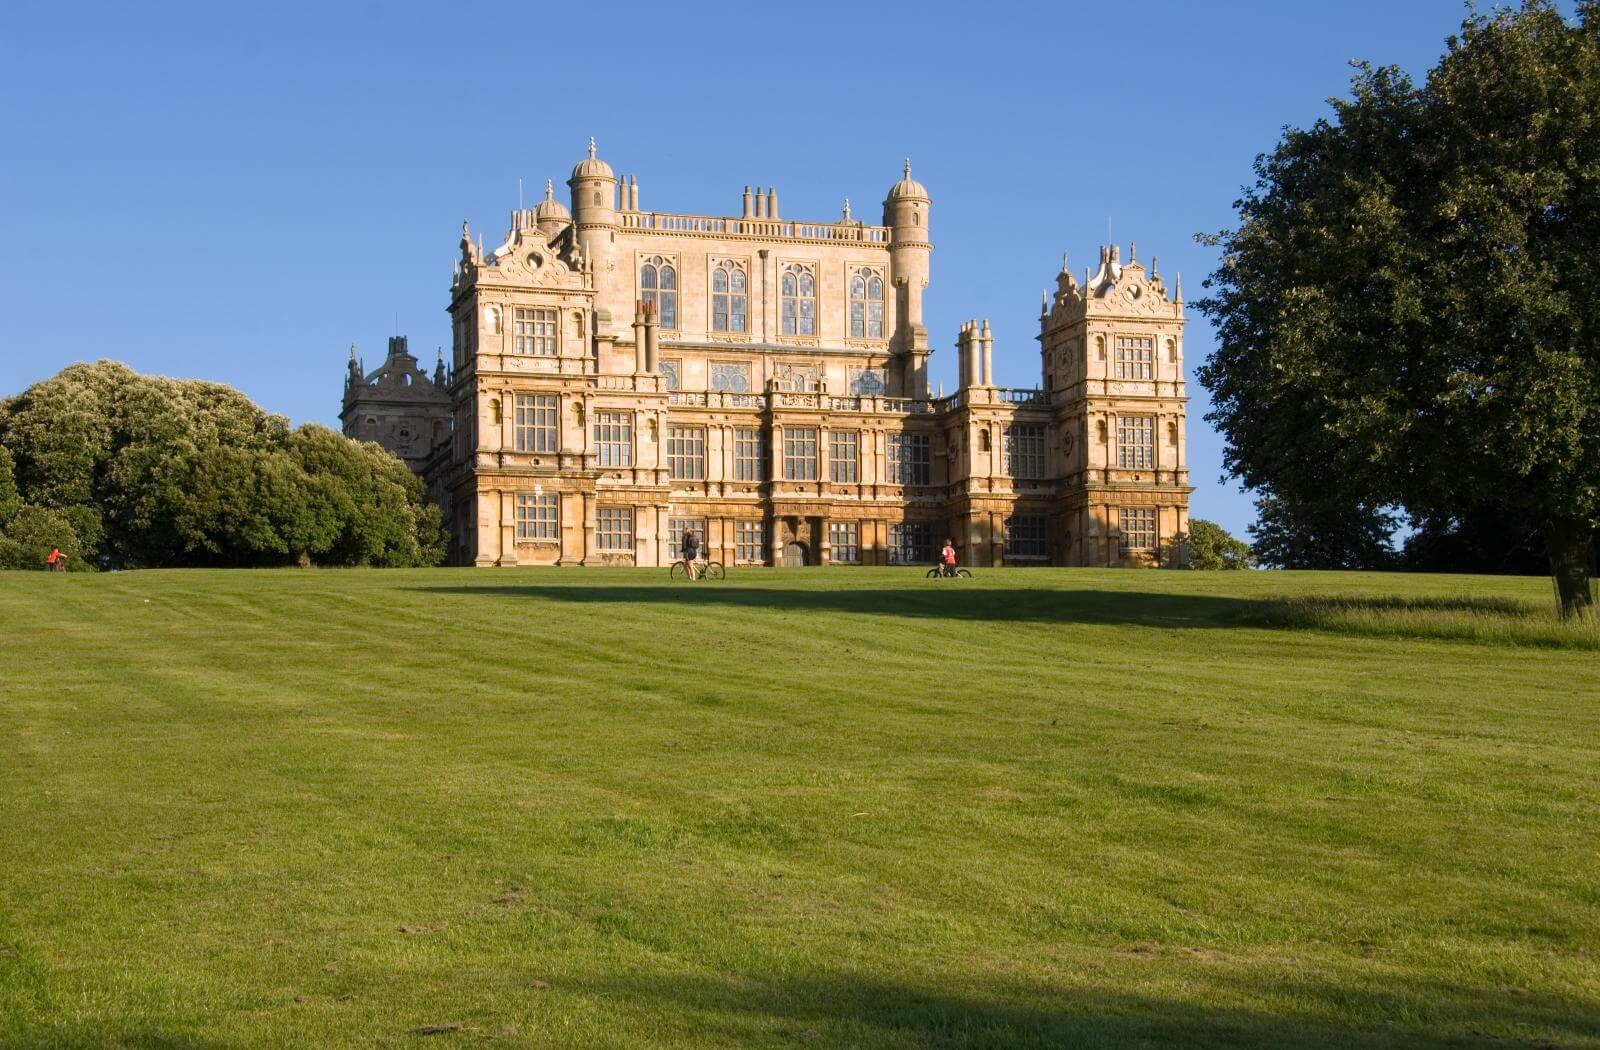 Exterior of Wollaton Hall